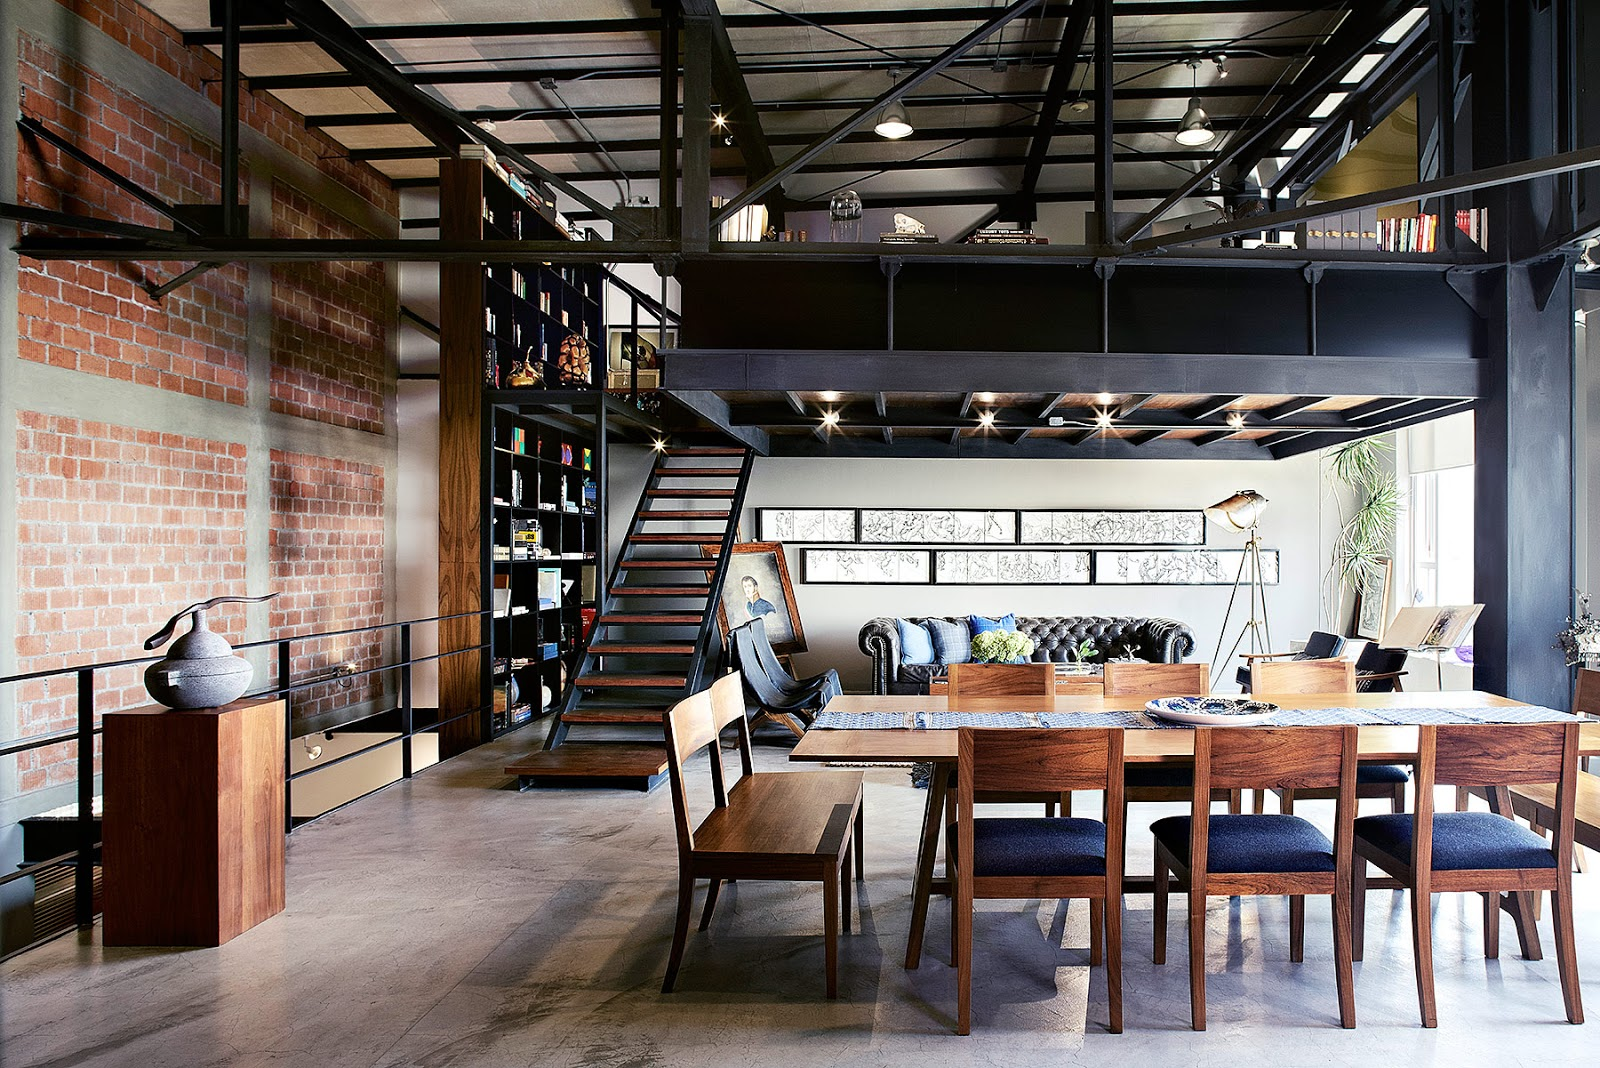 Un loft in stile industriale in messico coffee break for Design moderno casa industriale